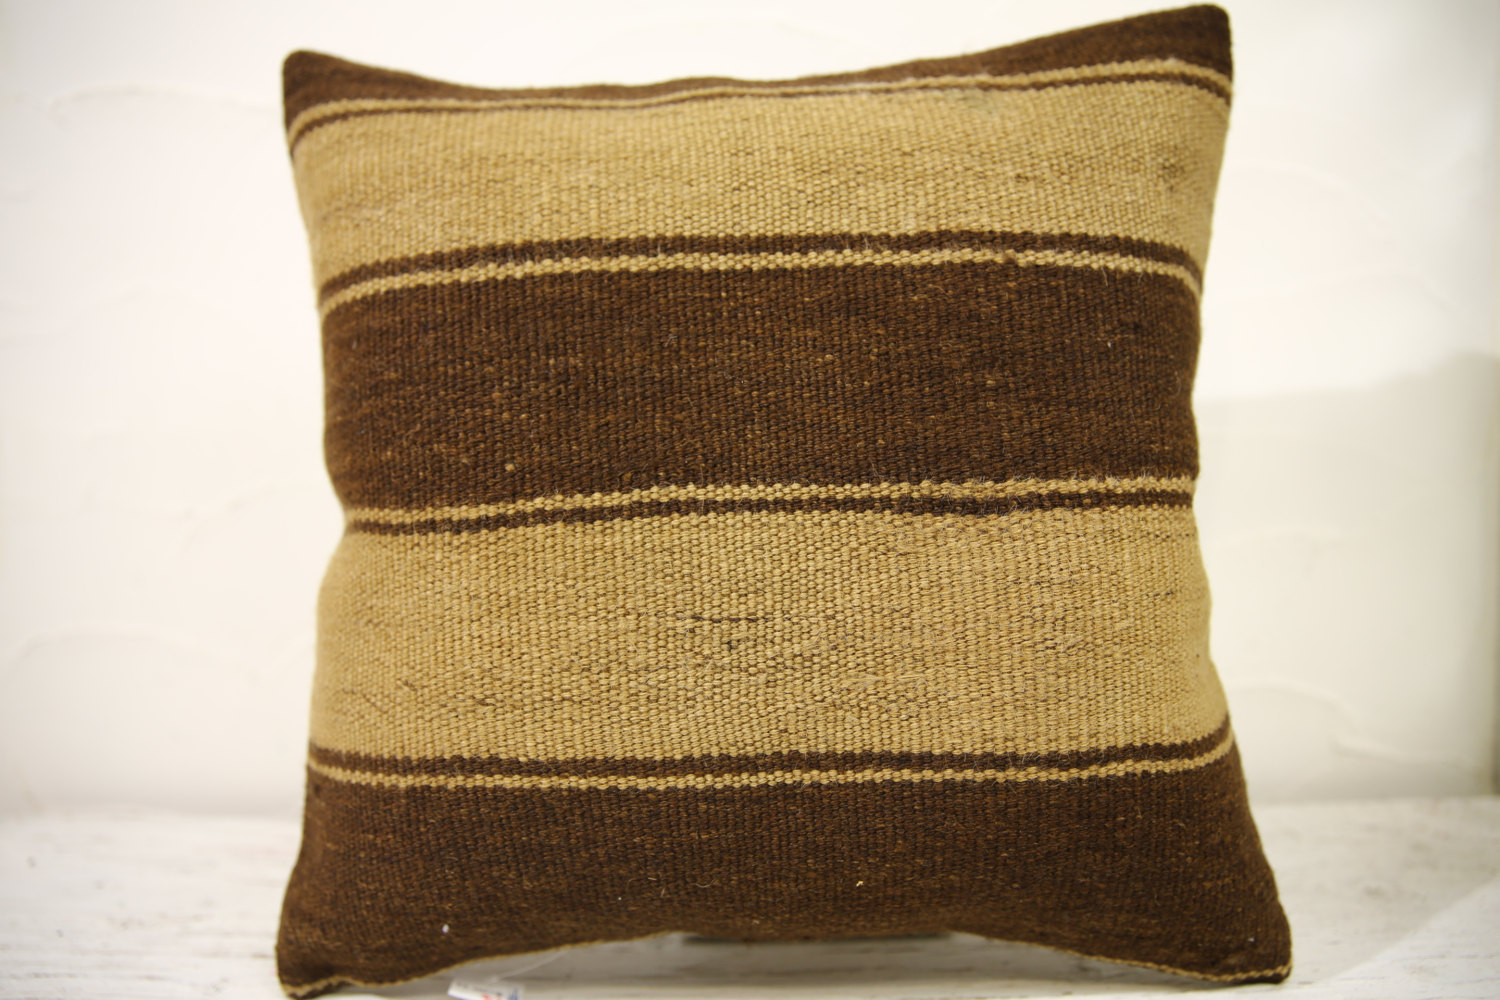 Kilim Pillows | 16x16 | Decorative Pillows | 917 | Accent Pillows,turkish pillow